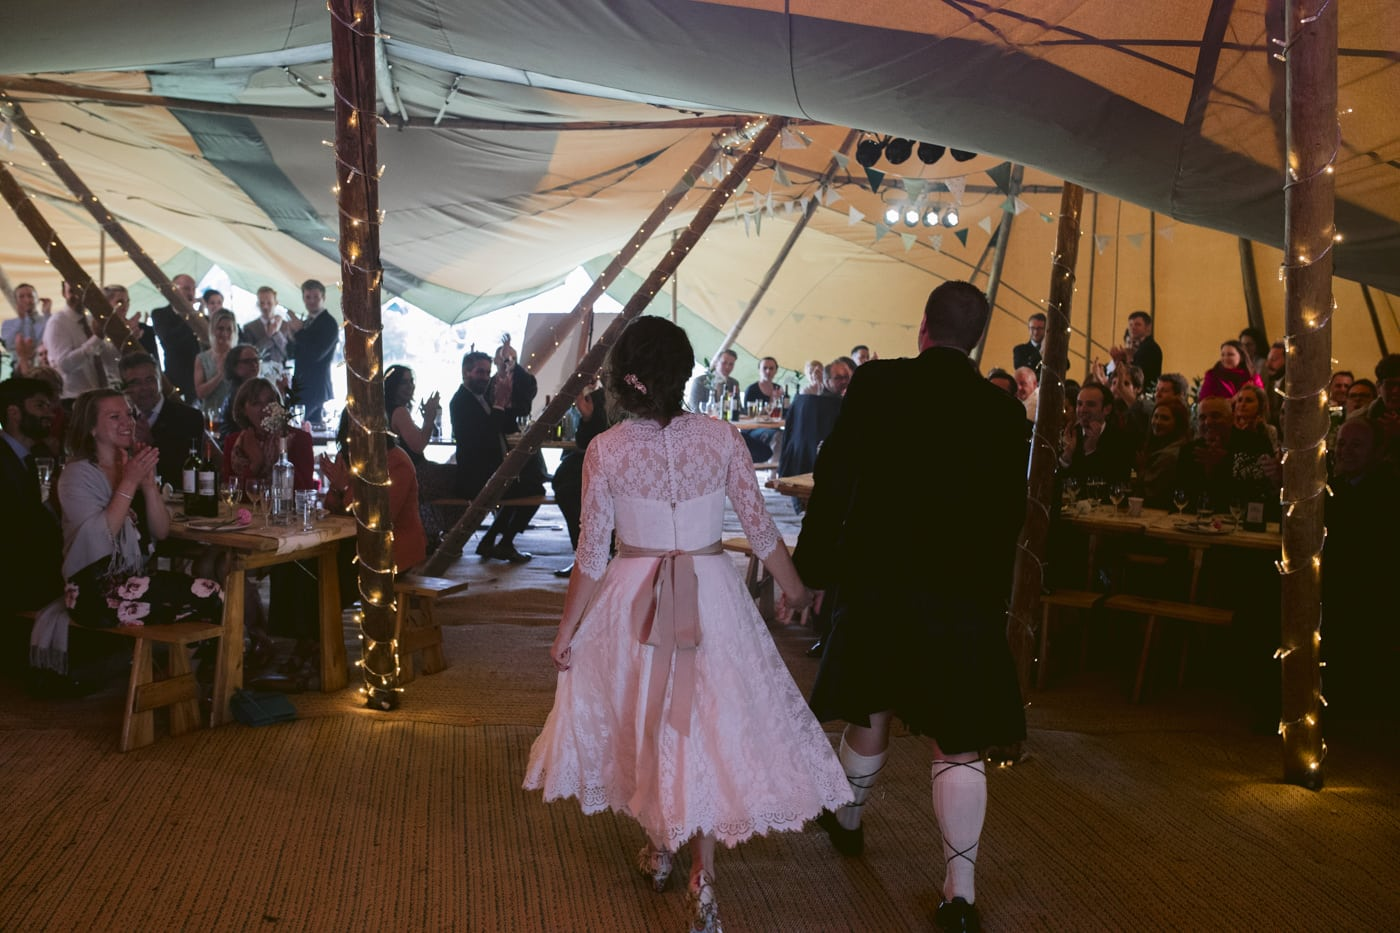 Bride and Groom Walking in Tipi Tent towards Guests